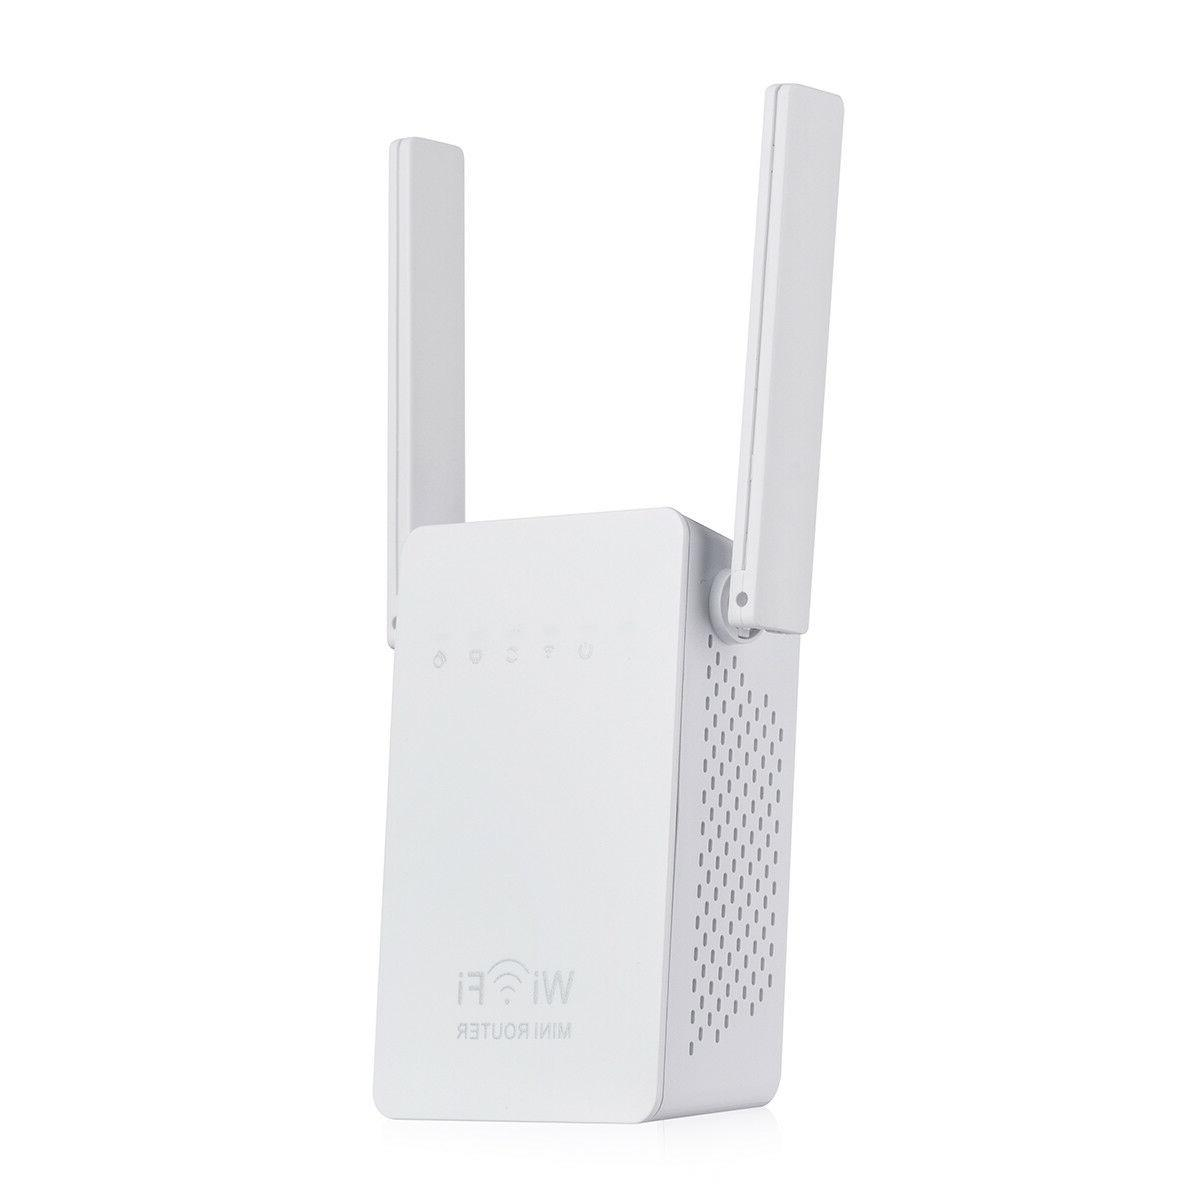 300Mbps WiFi Repeater Router Hotspot AP